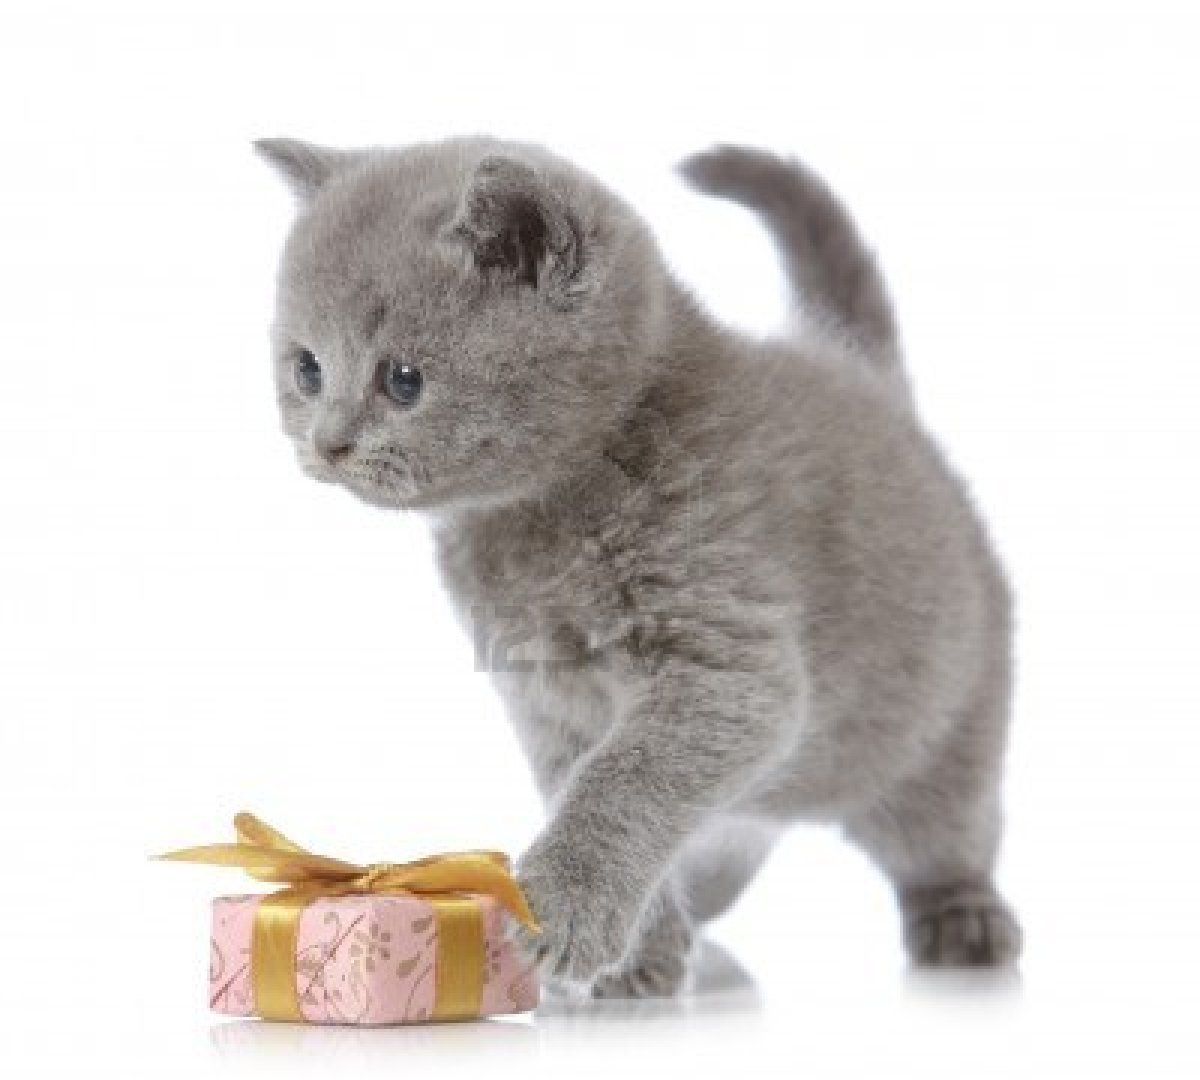 British Shorthair kitten photo and wallpaper Beautiful British